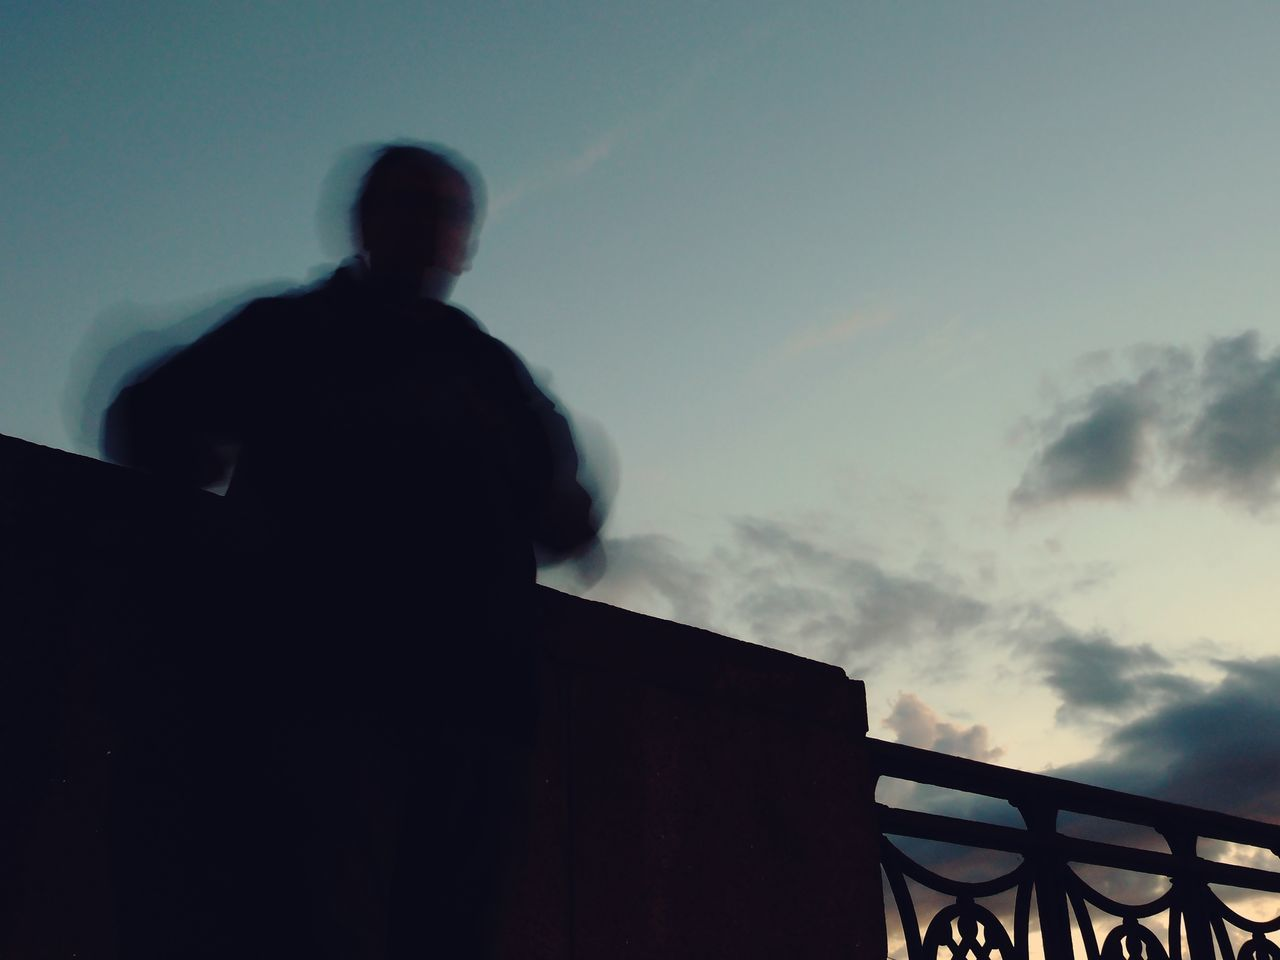 Blurred Motion Of Silhouette Man Against Sky